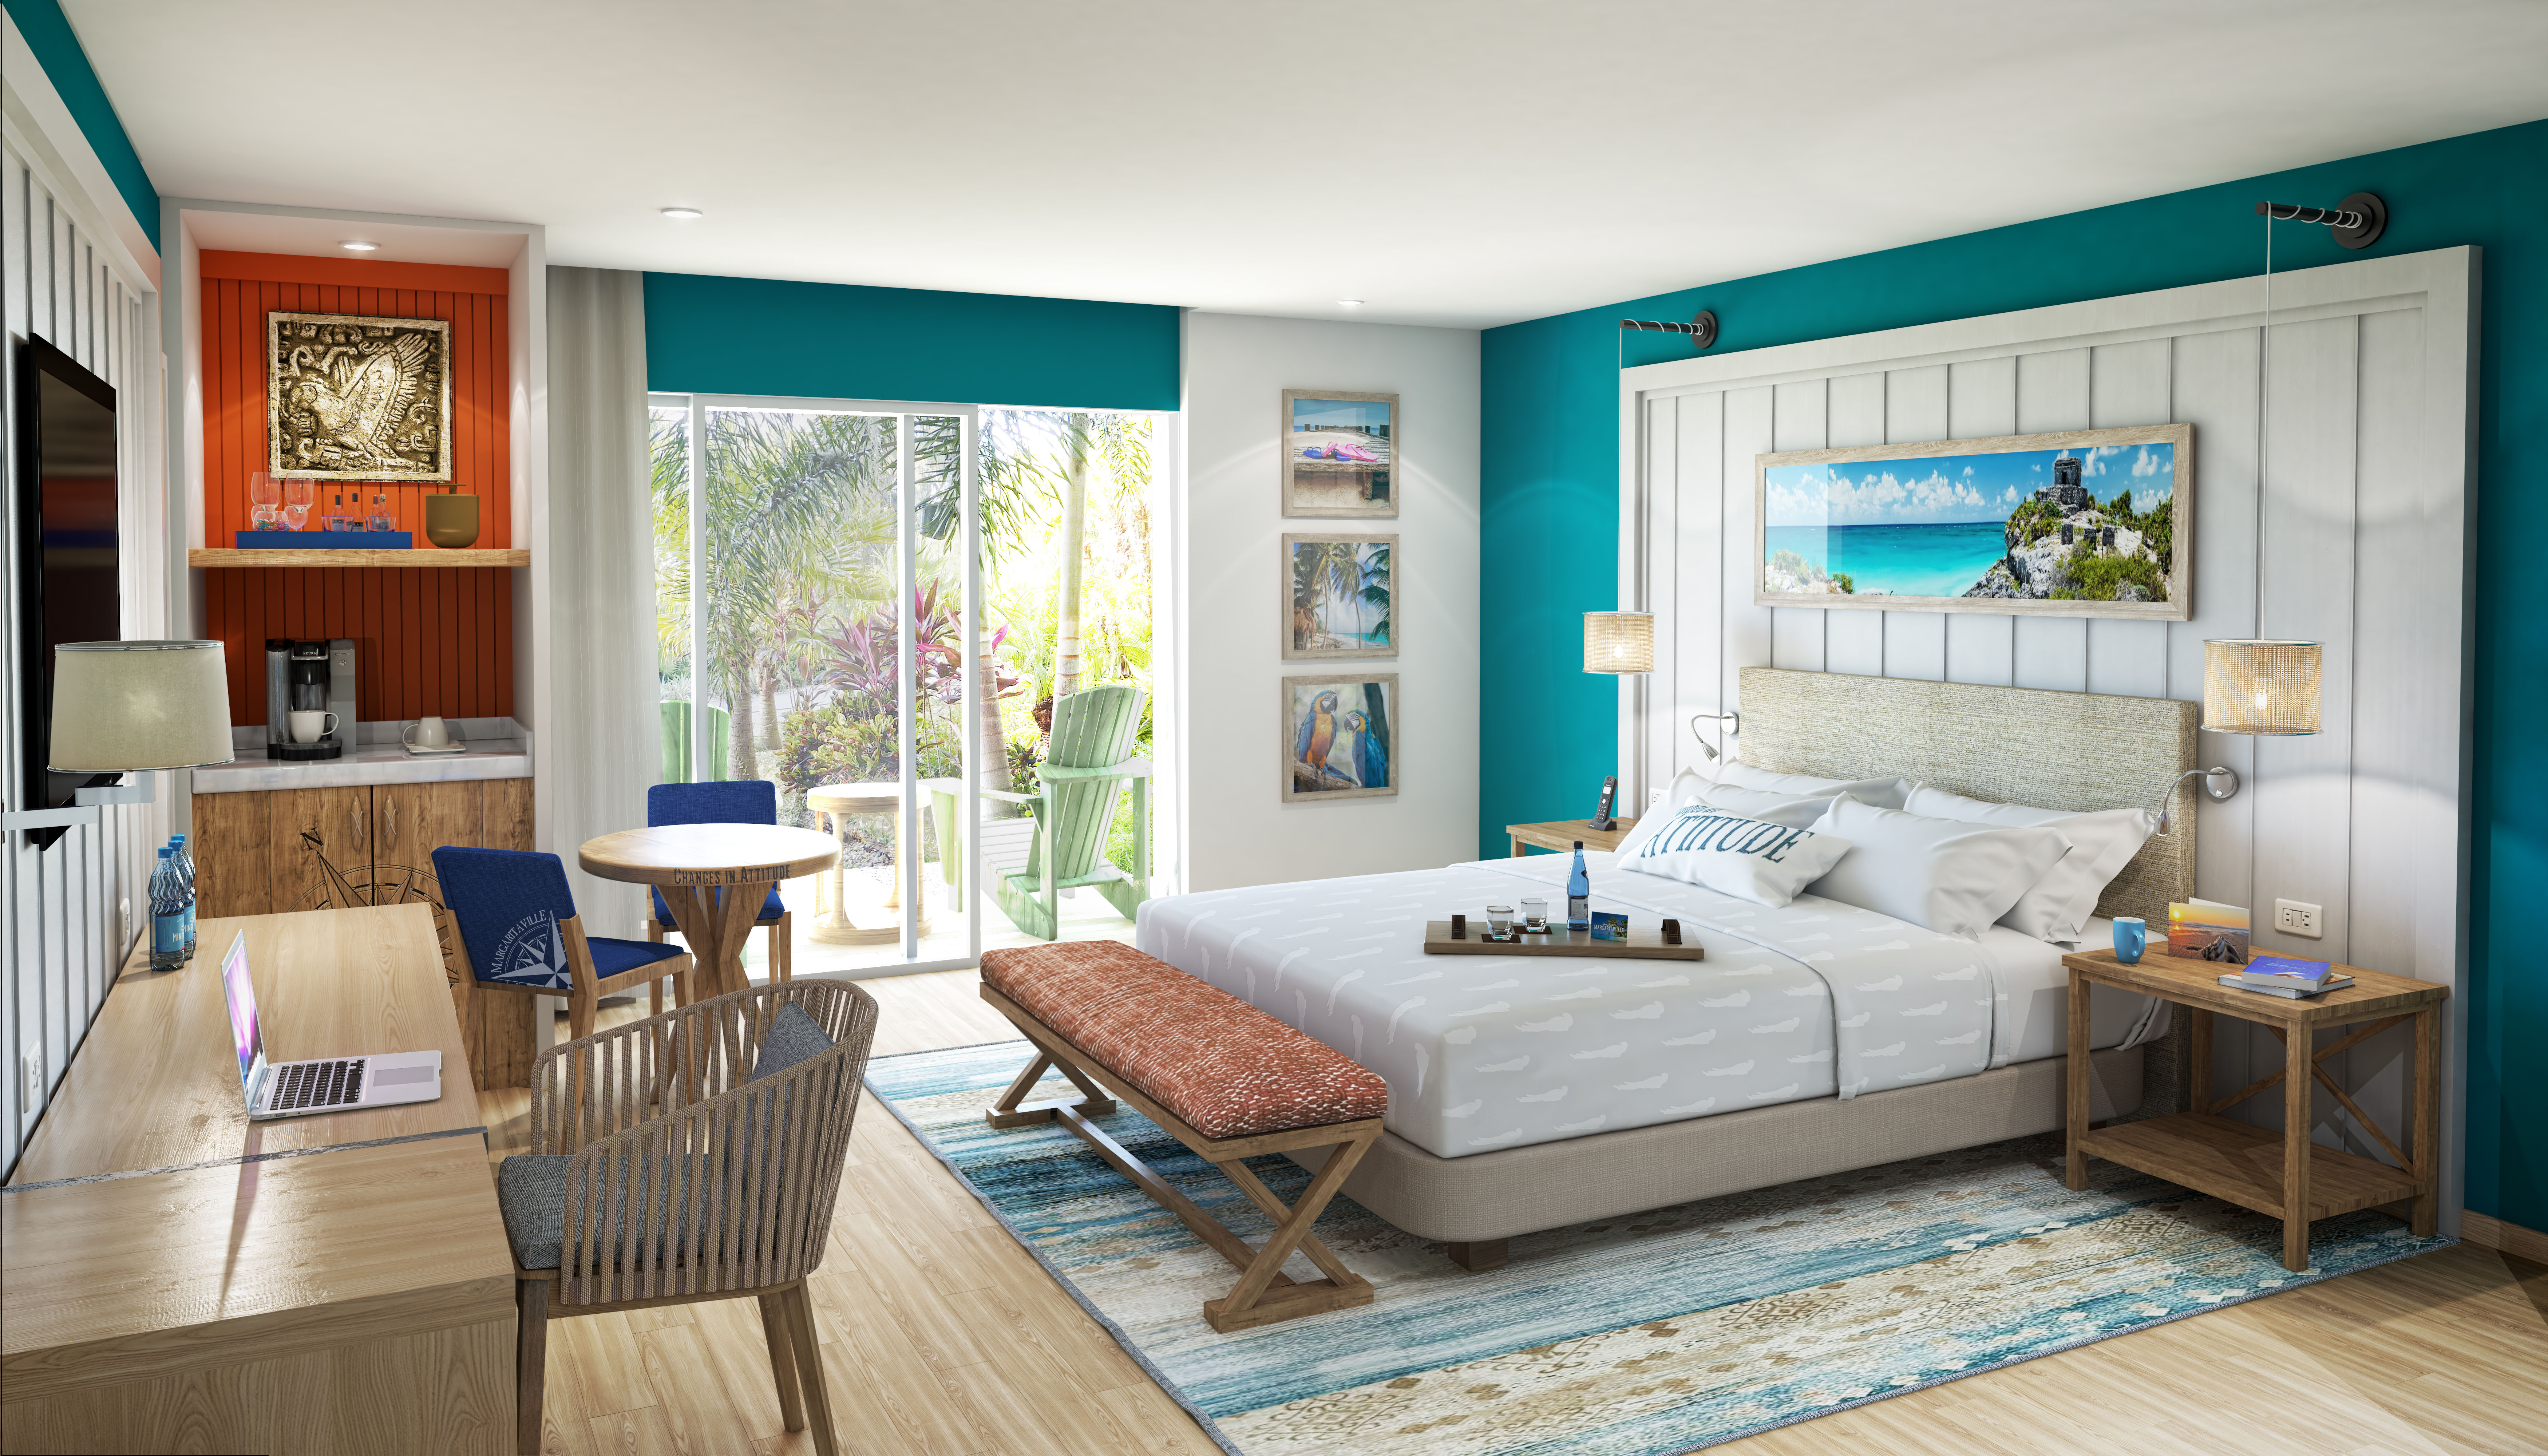 Showing slide 2 of 3 in image gallery, Paradise Junior Suite - artist rendering